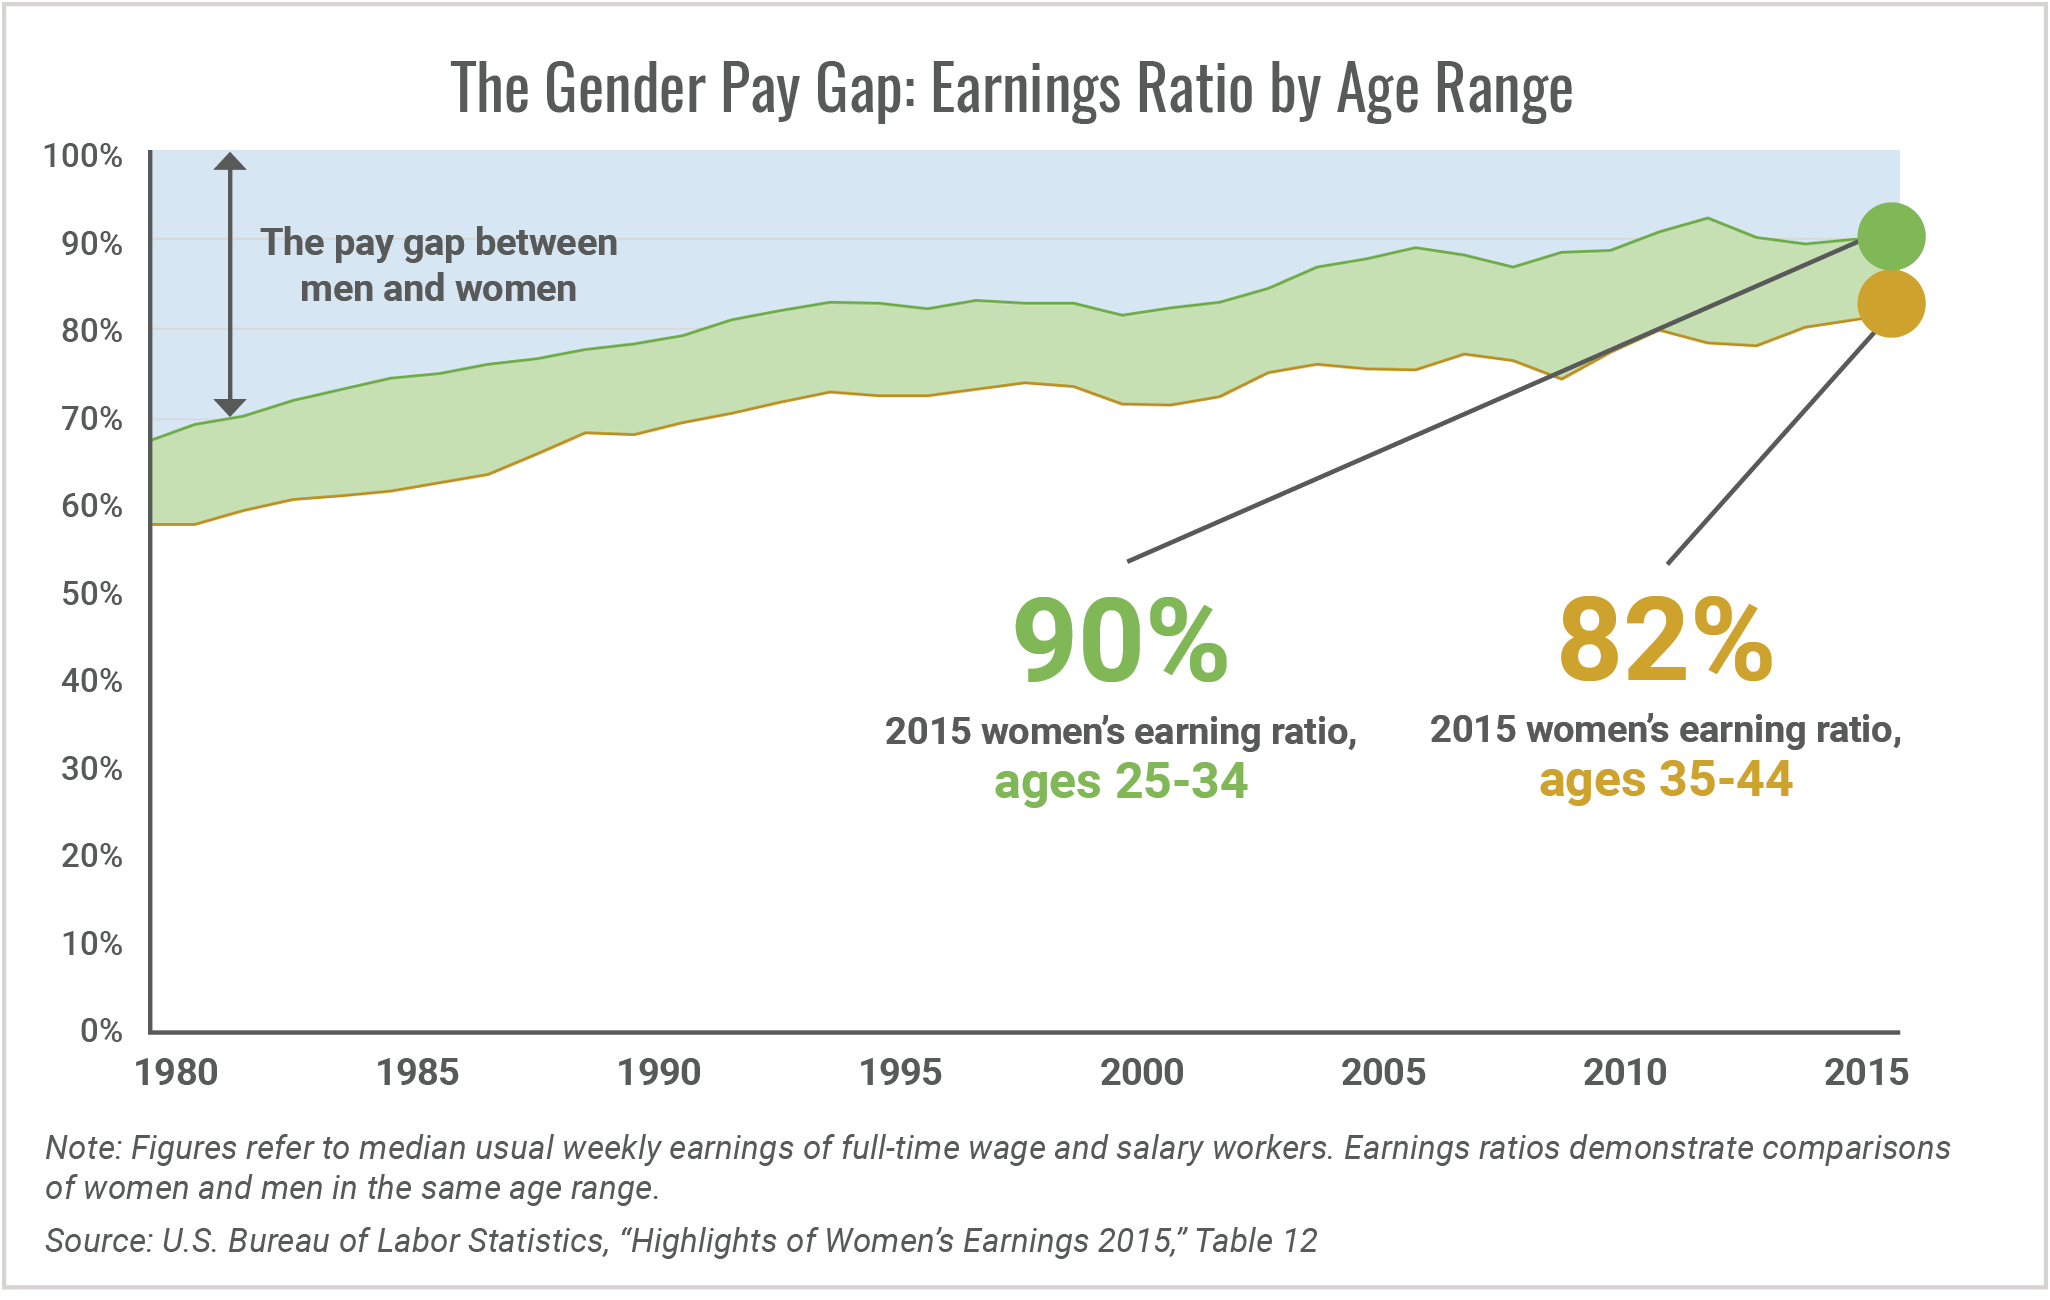 007 Research Paper The Gender Pay Earnings Ratio By Age Range1505304619 Top Gap In India Wage Outline Full